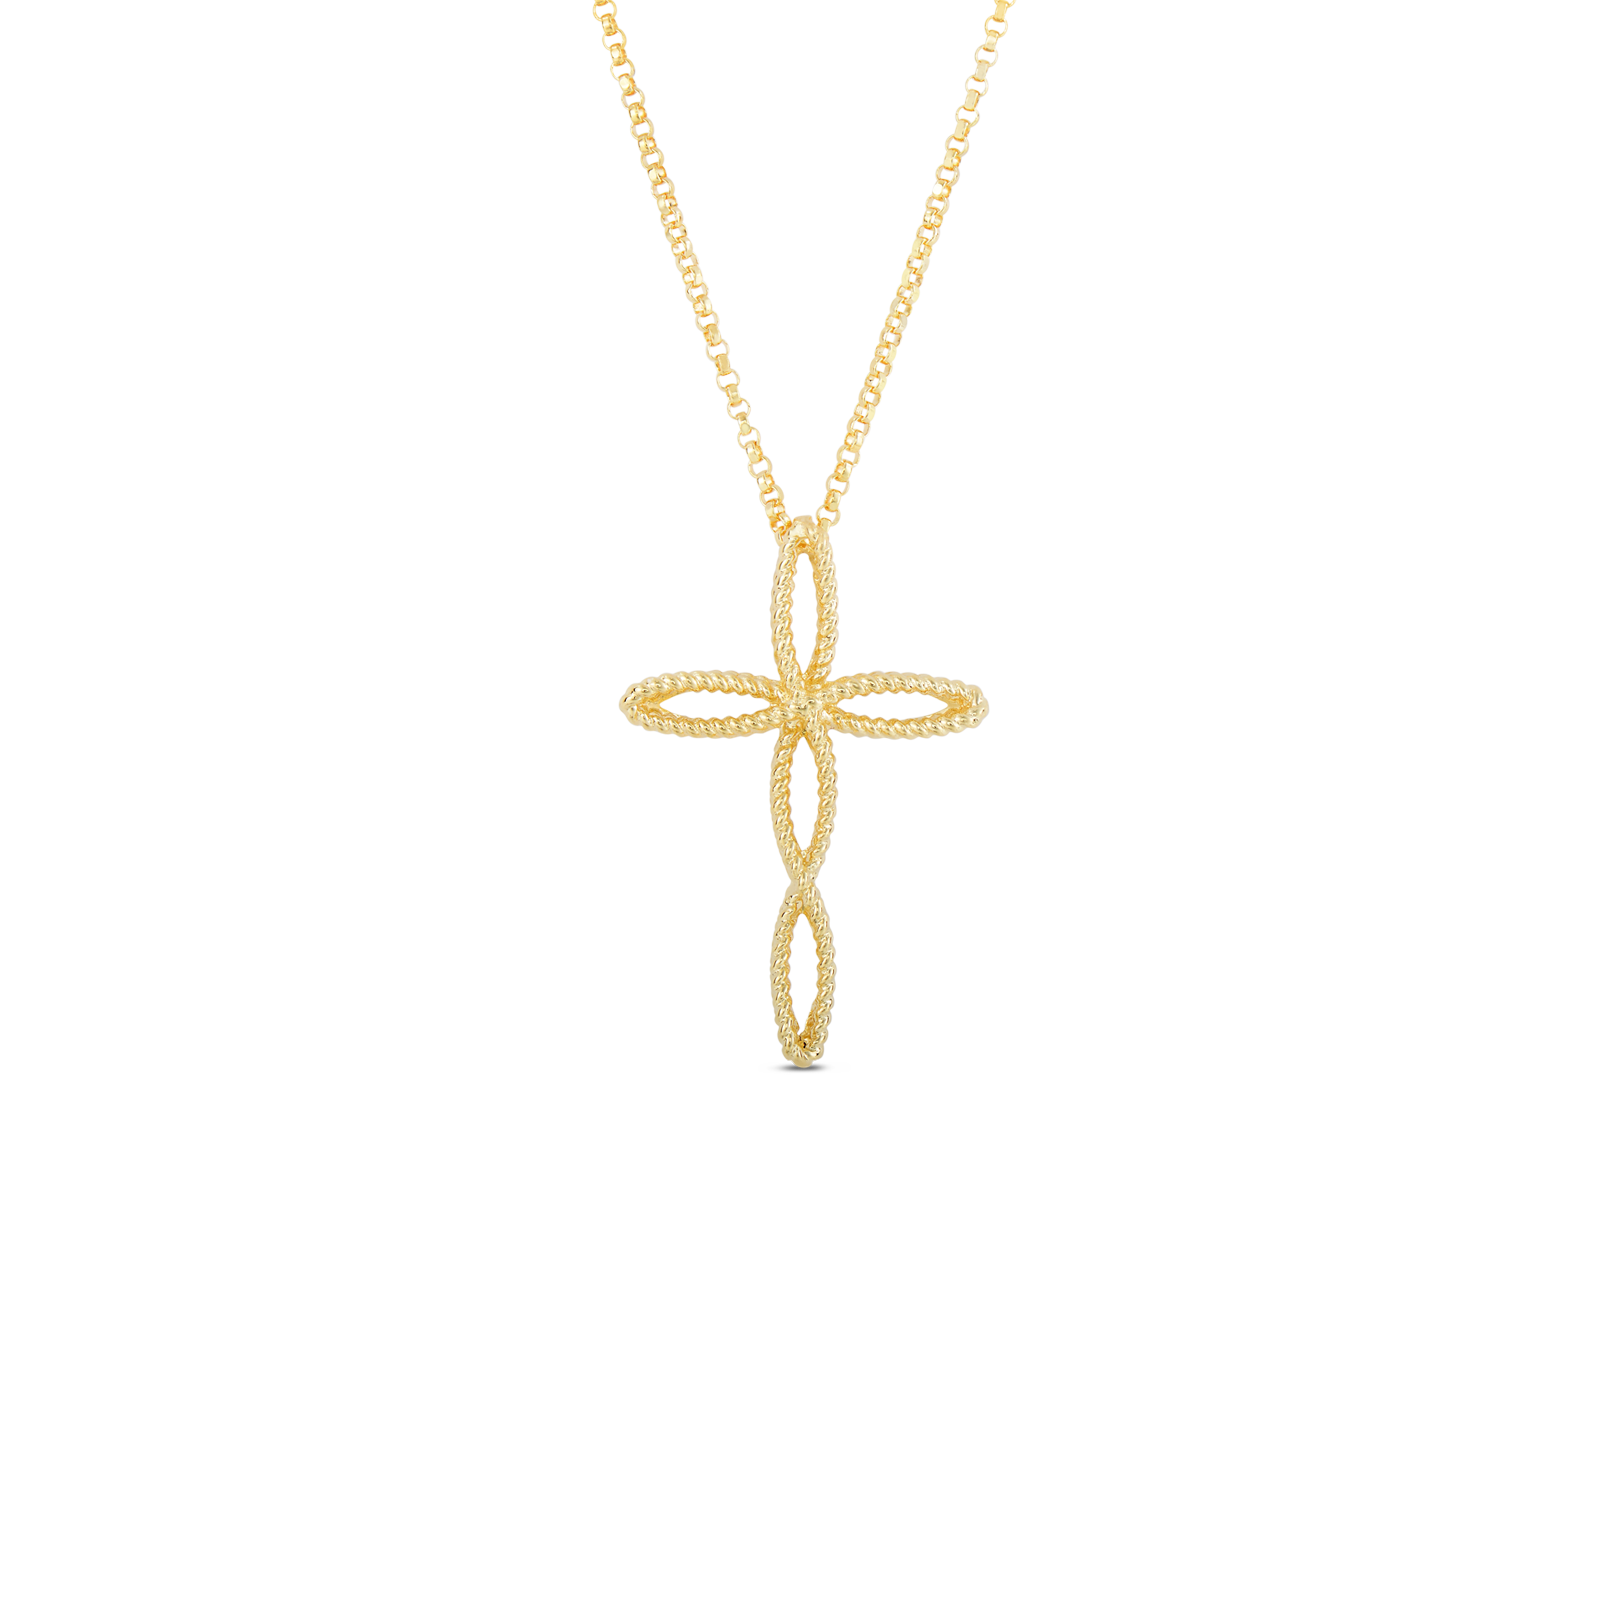 Italian gold cross pendant by roberto coin in new barocco roberto coin barocco 18k yellow gold cross pendant aloadofball Image collections